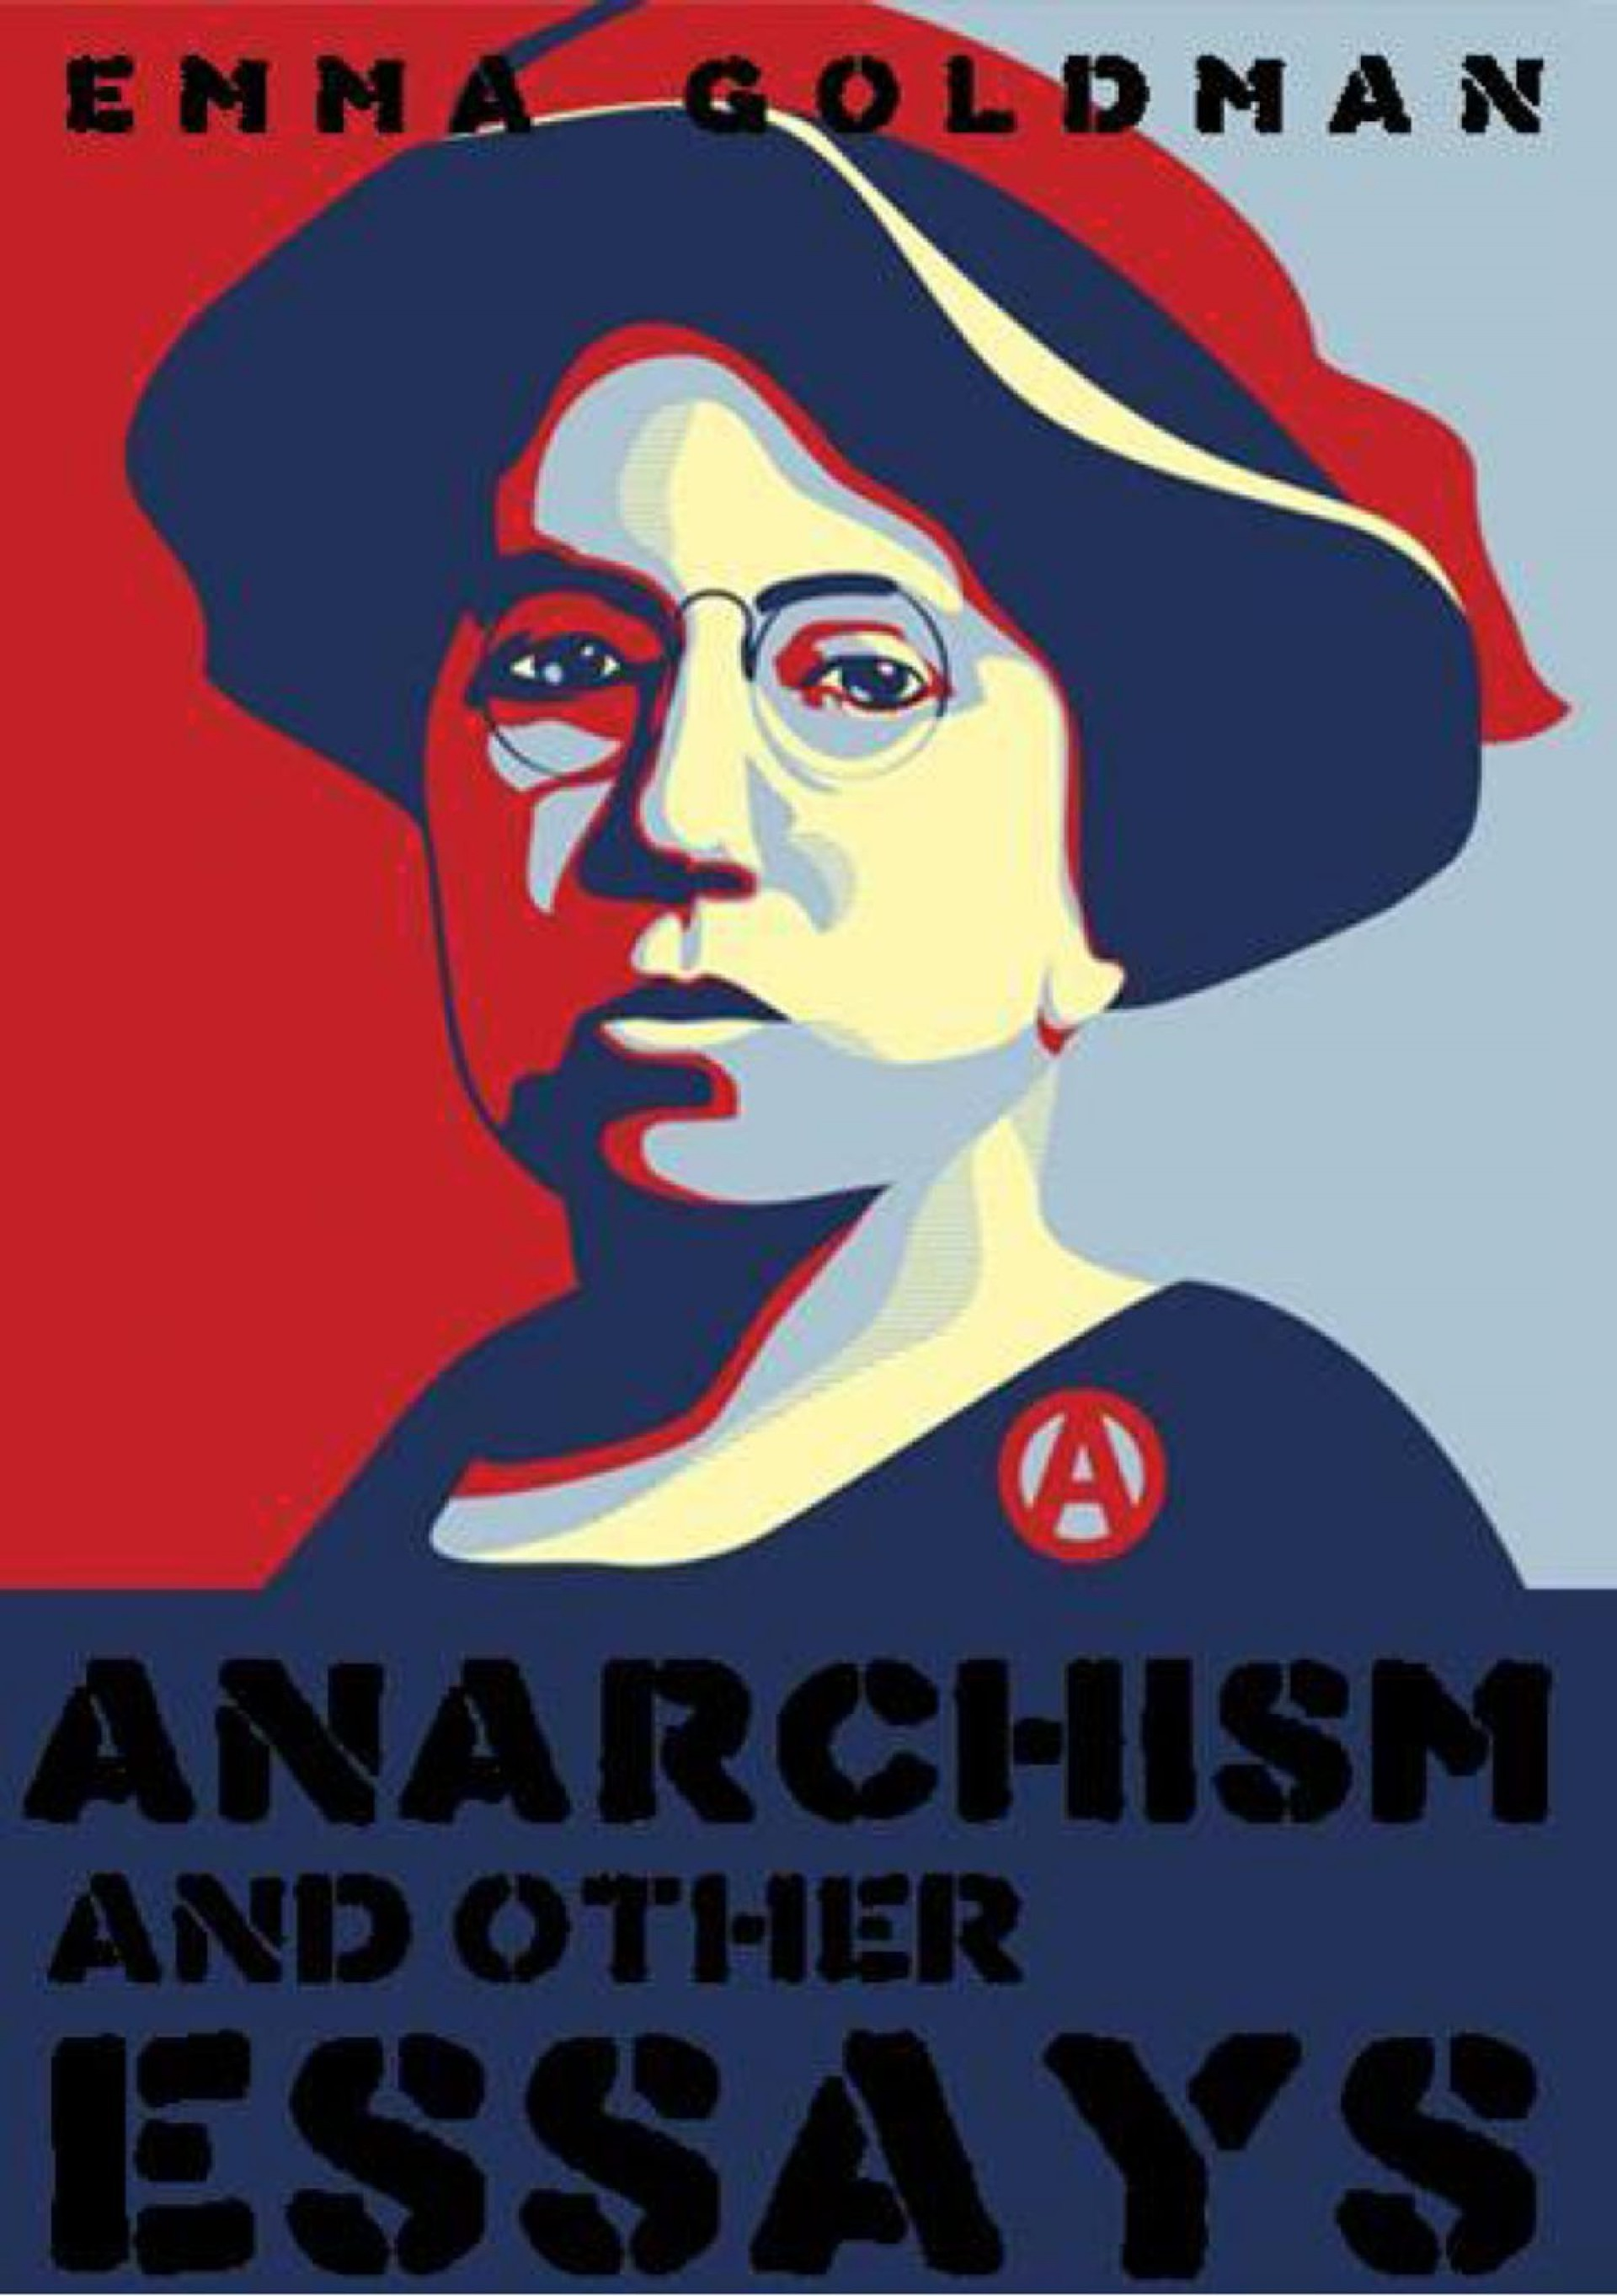 002 Essay Example Anarchism And Other Essays Incredible Emma Goldman Summary Pdf 1920